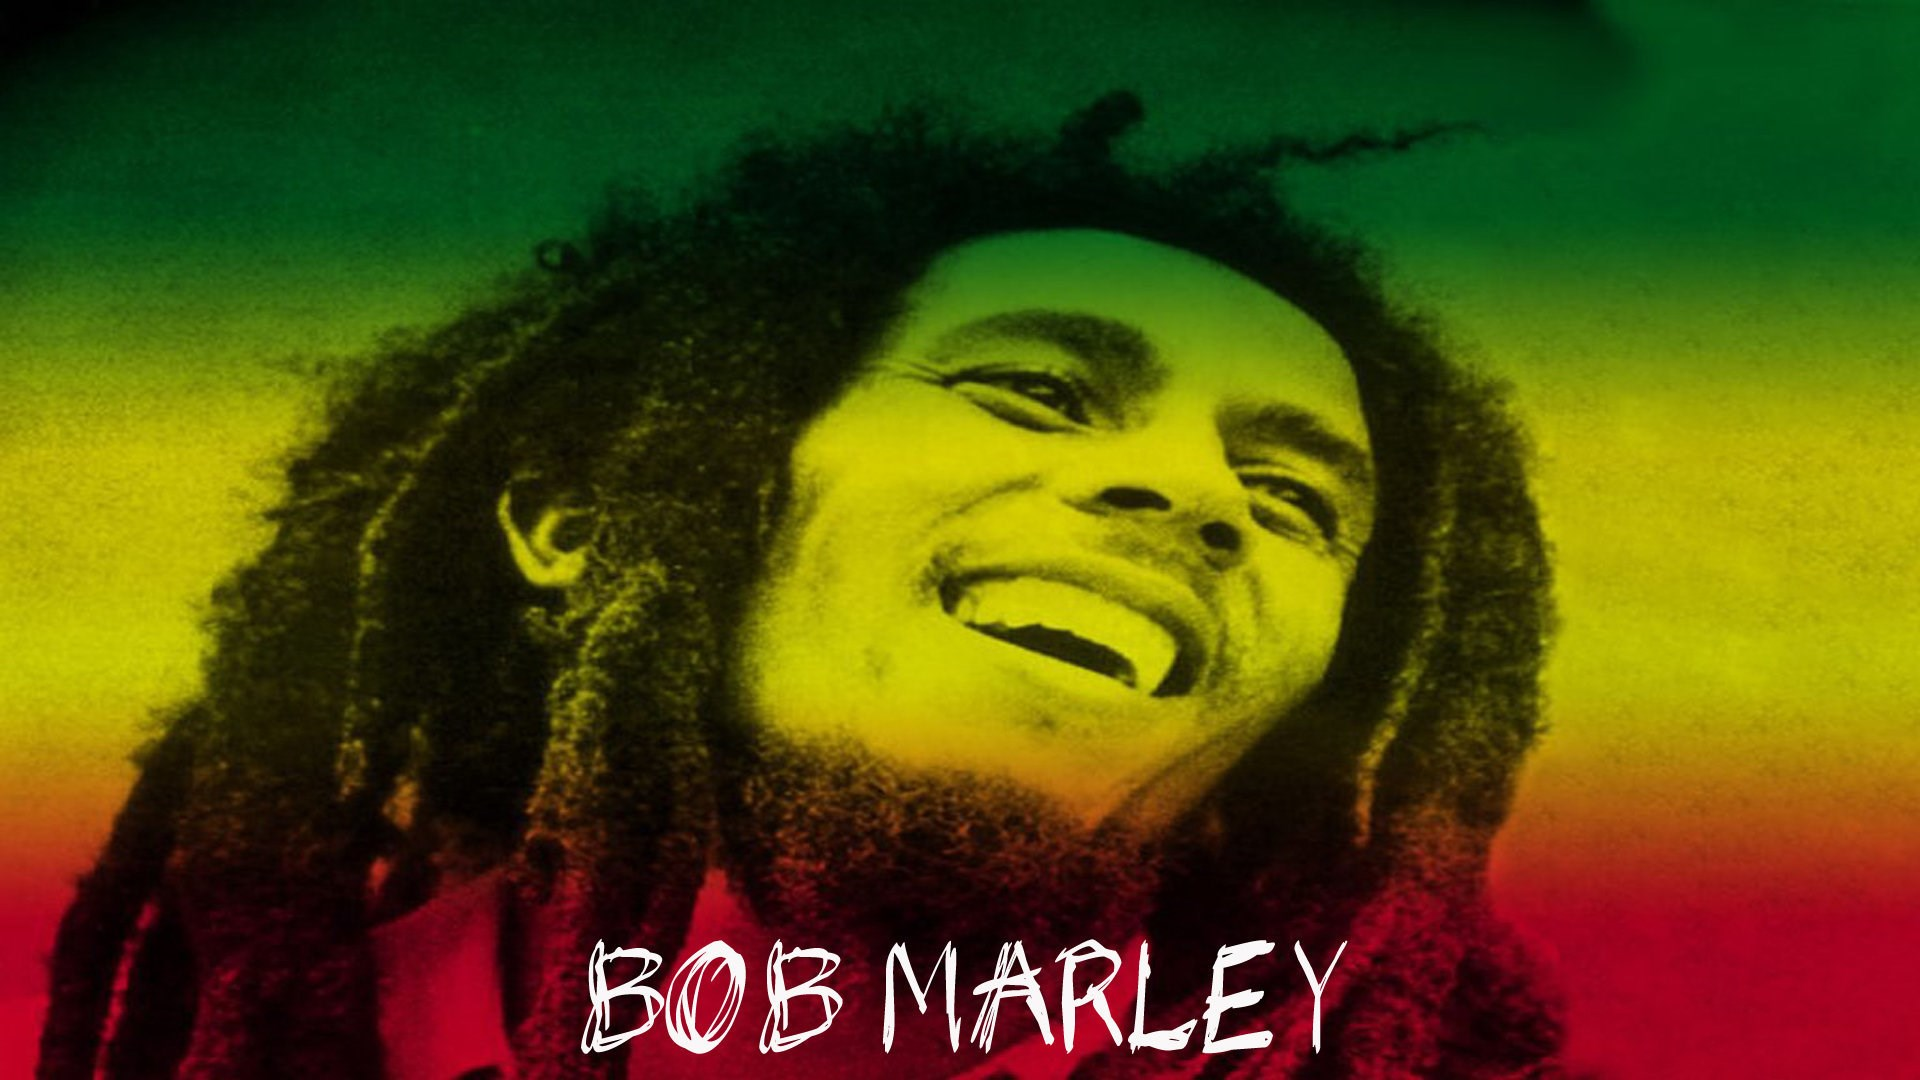 bob-marley-free-high-resolution-wallpaper-wpc5802987